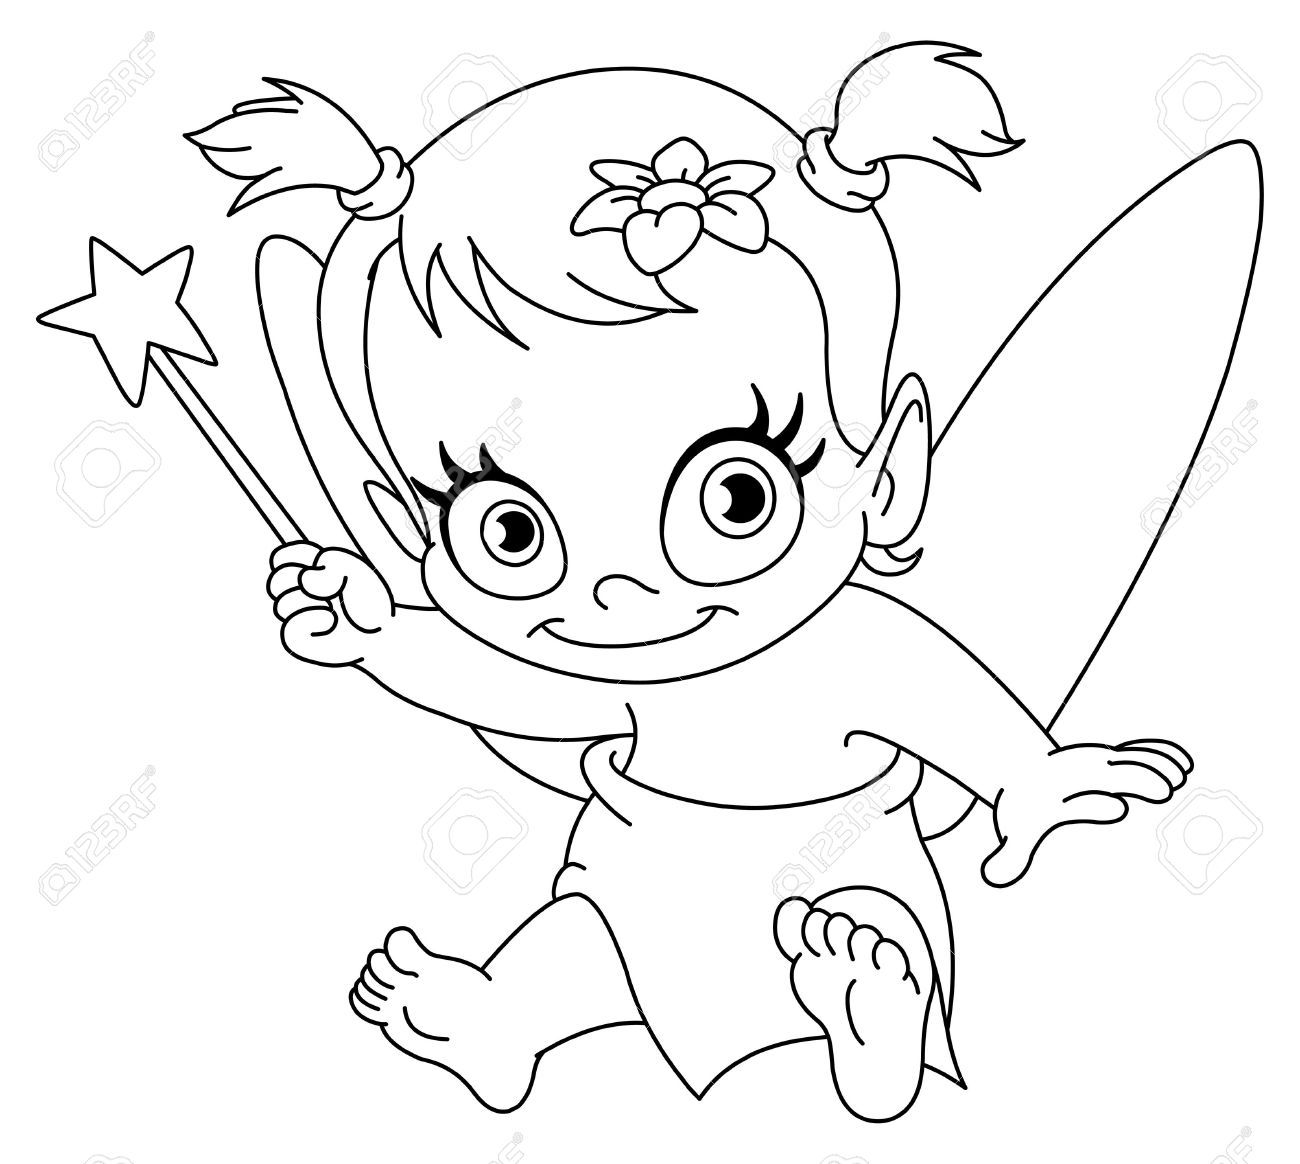 Newborn baby girl coloring pages coloring home for Newborn baby coloring pages